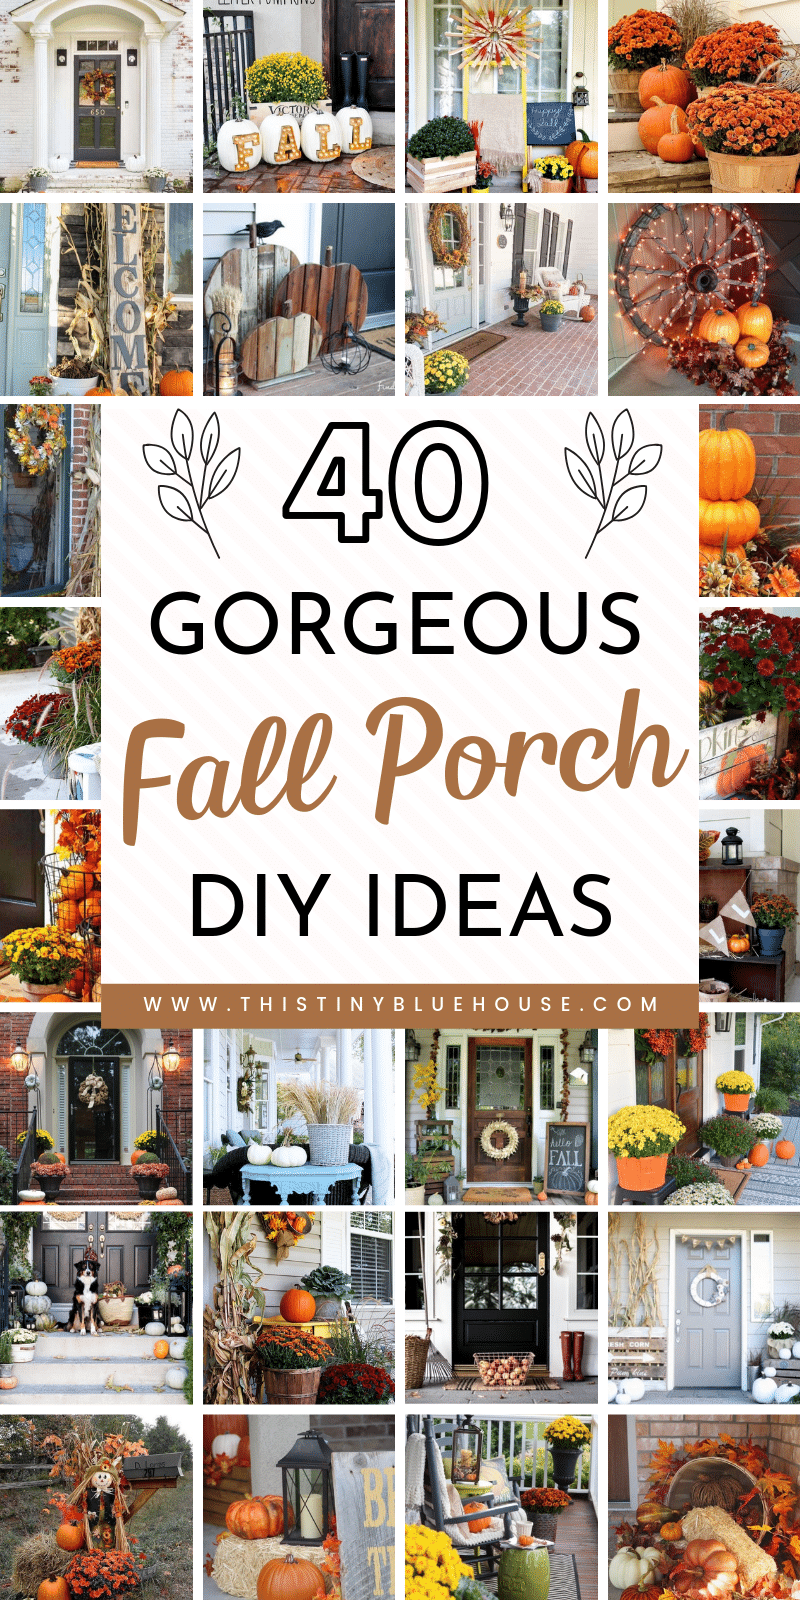 40 Gorgeous Fall Diy Porch Decor Ideas This Tiny Blue House